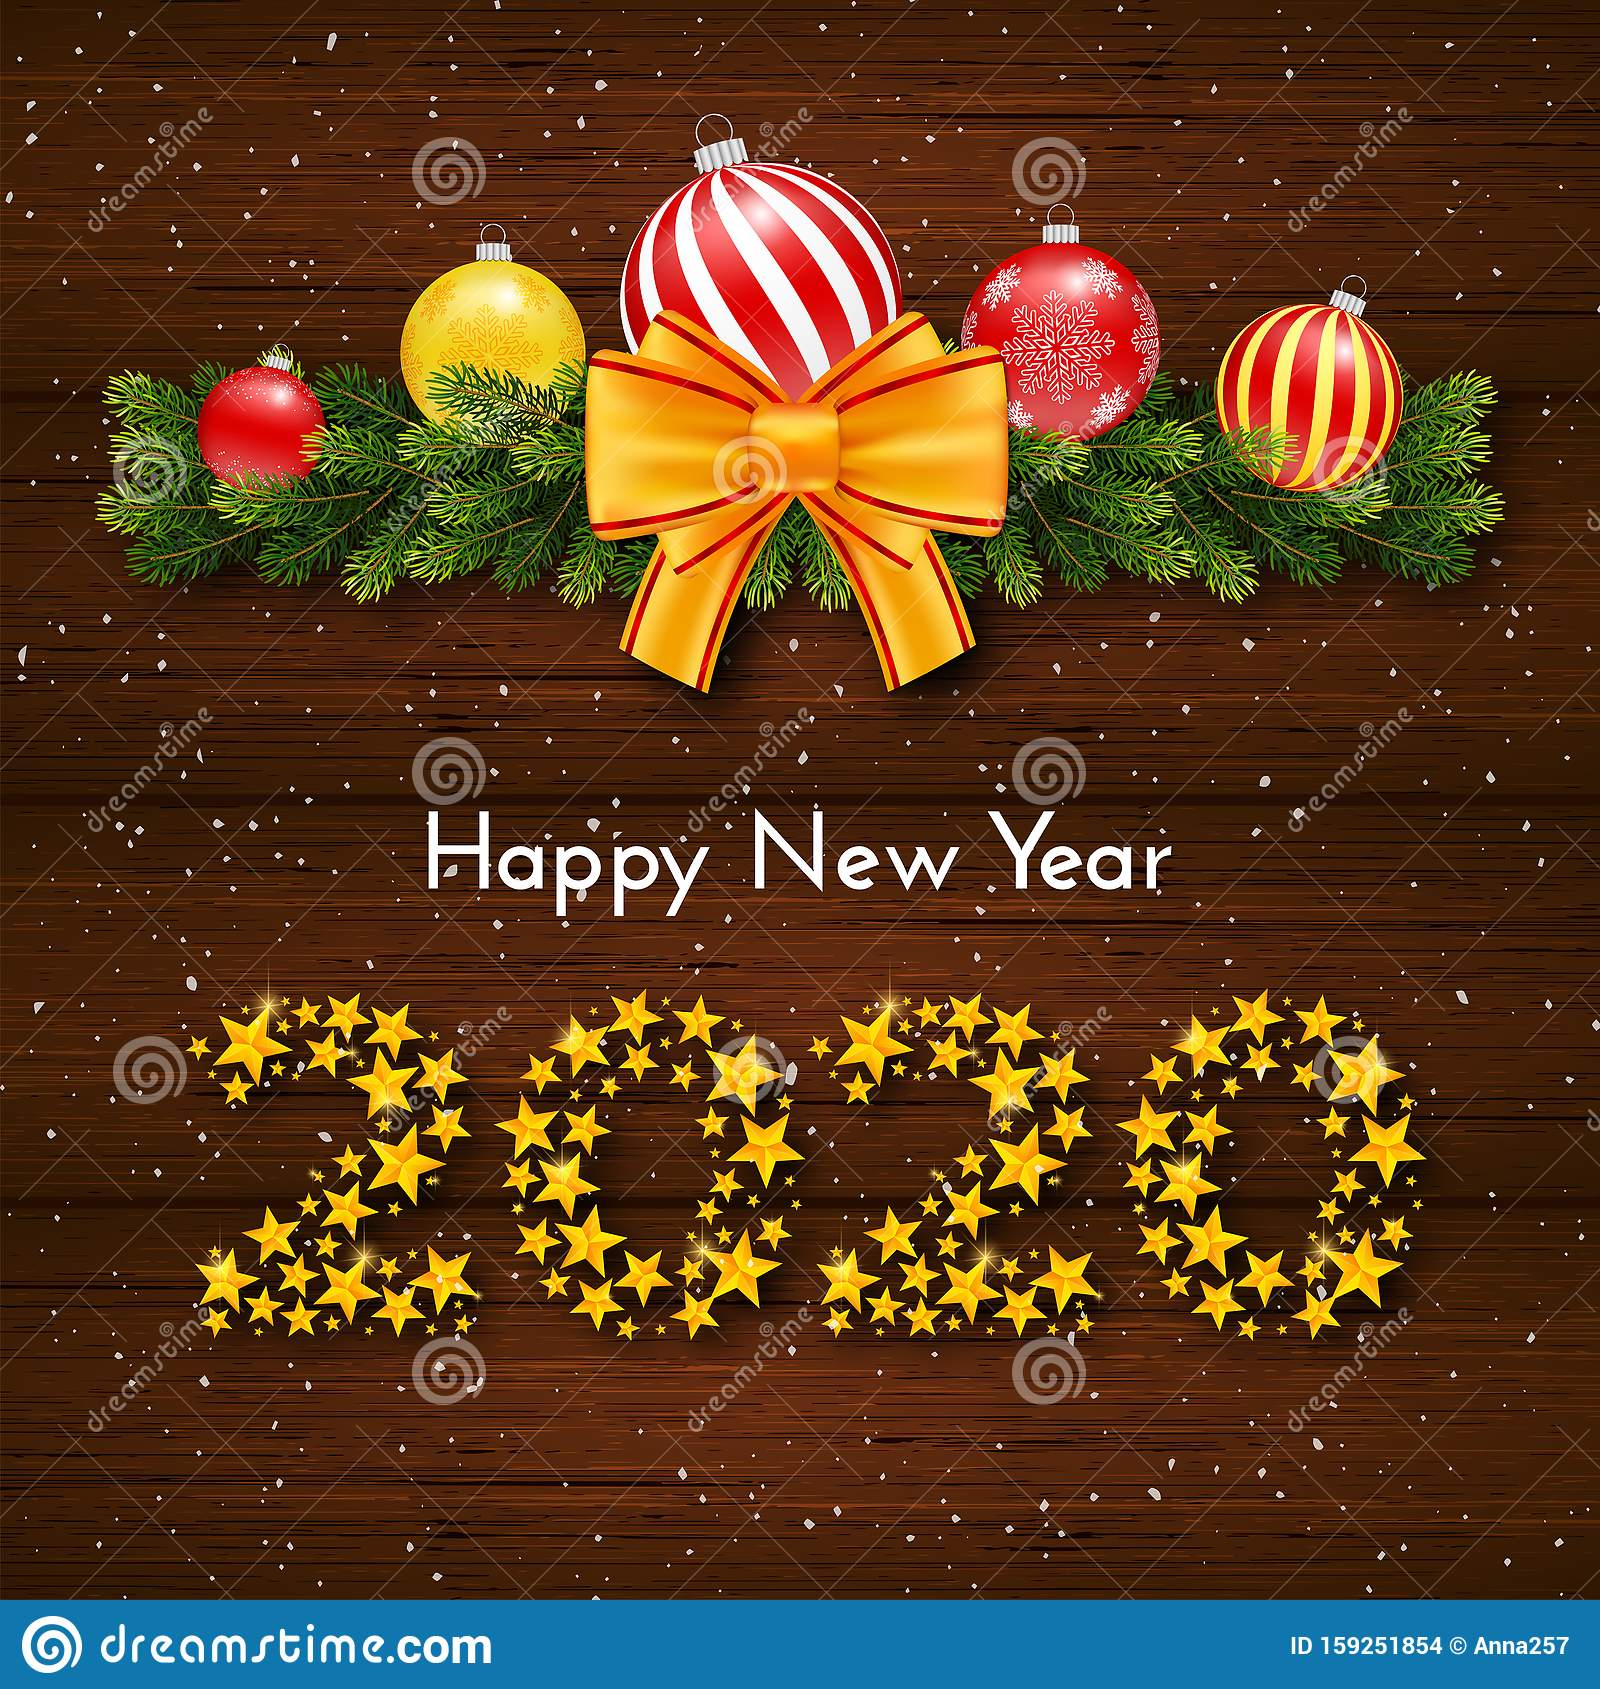 Holiday Gift Card Happy New Year 2020 Vector Stock